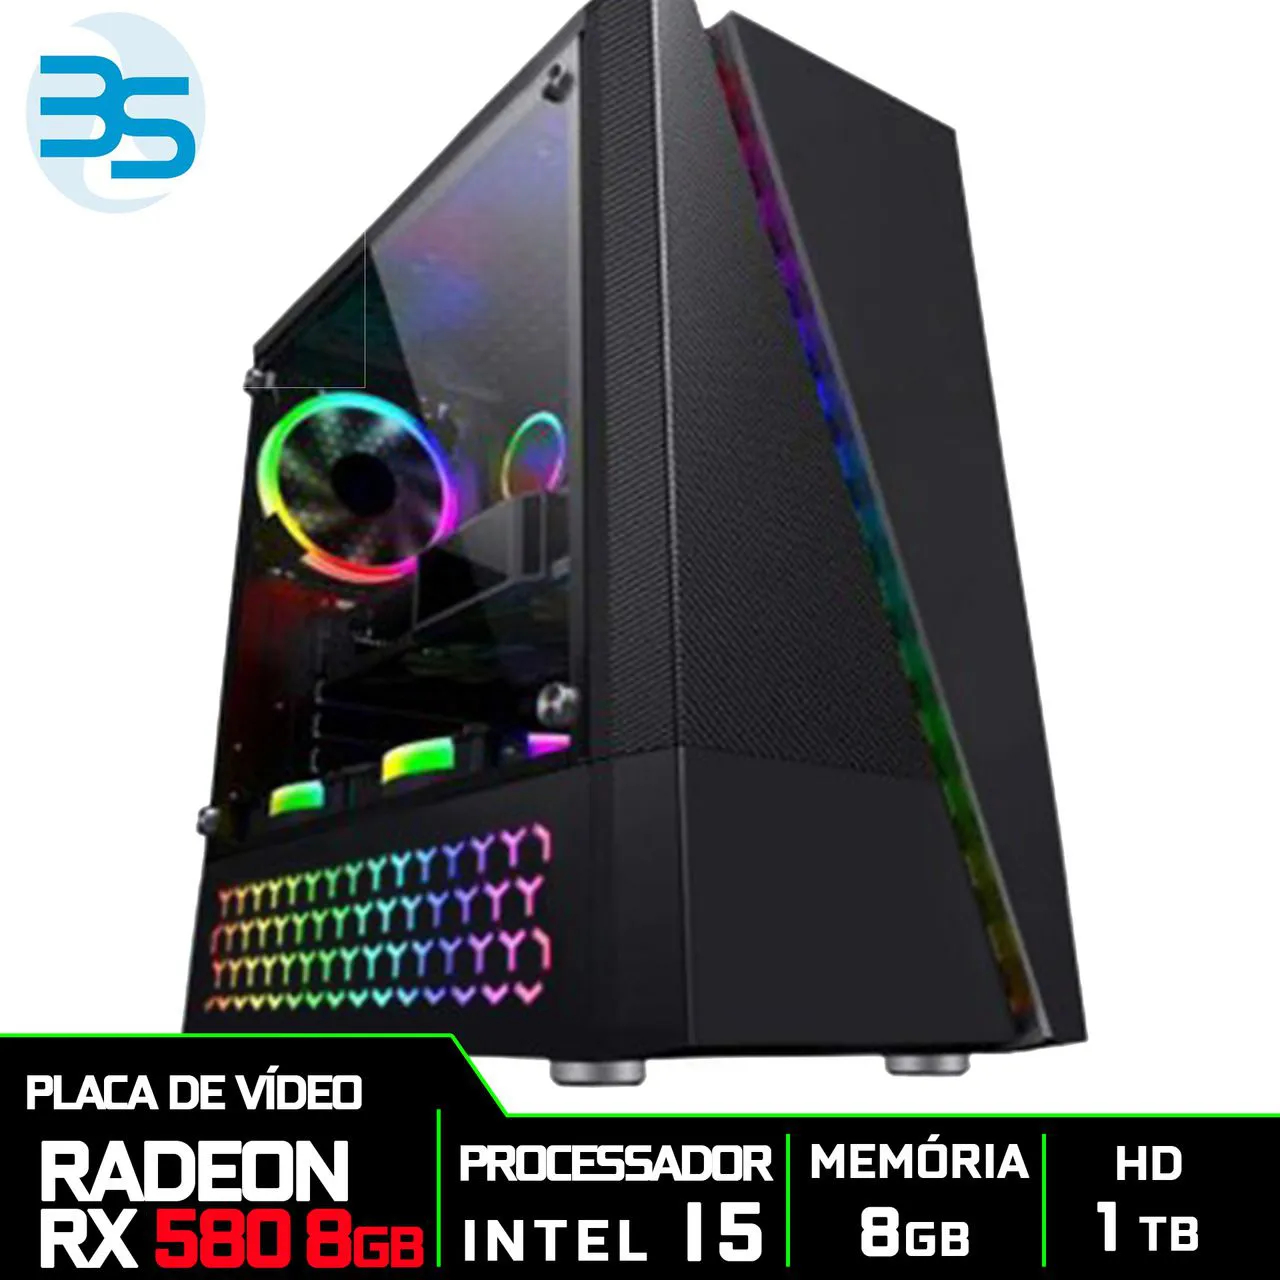 Bs Gamer Intel I5 9400F 2.9GHZ 9MB, 8GB DDR4, HD 1TB, 500W, RX 580 8GB